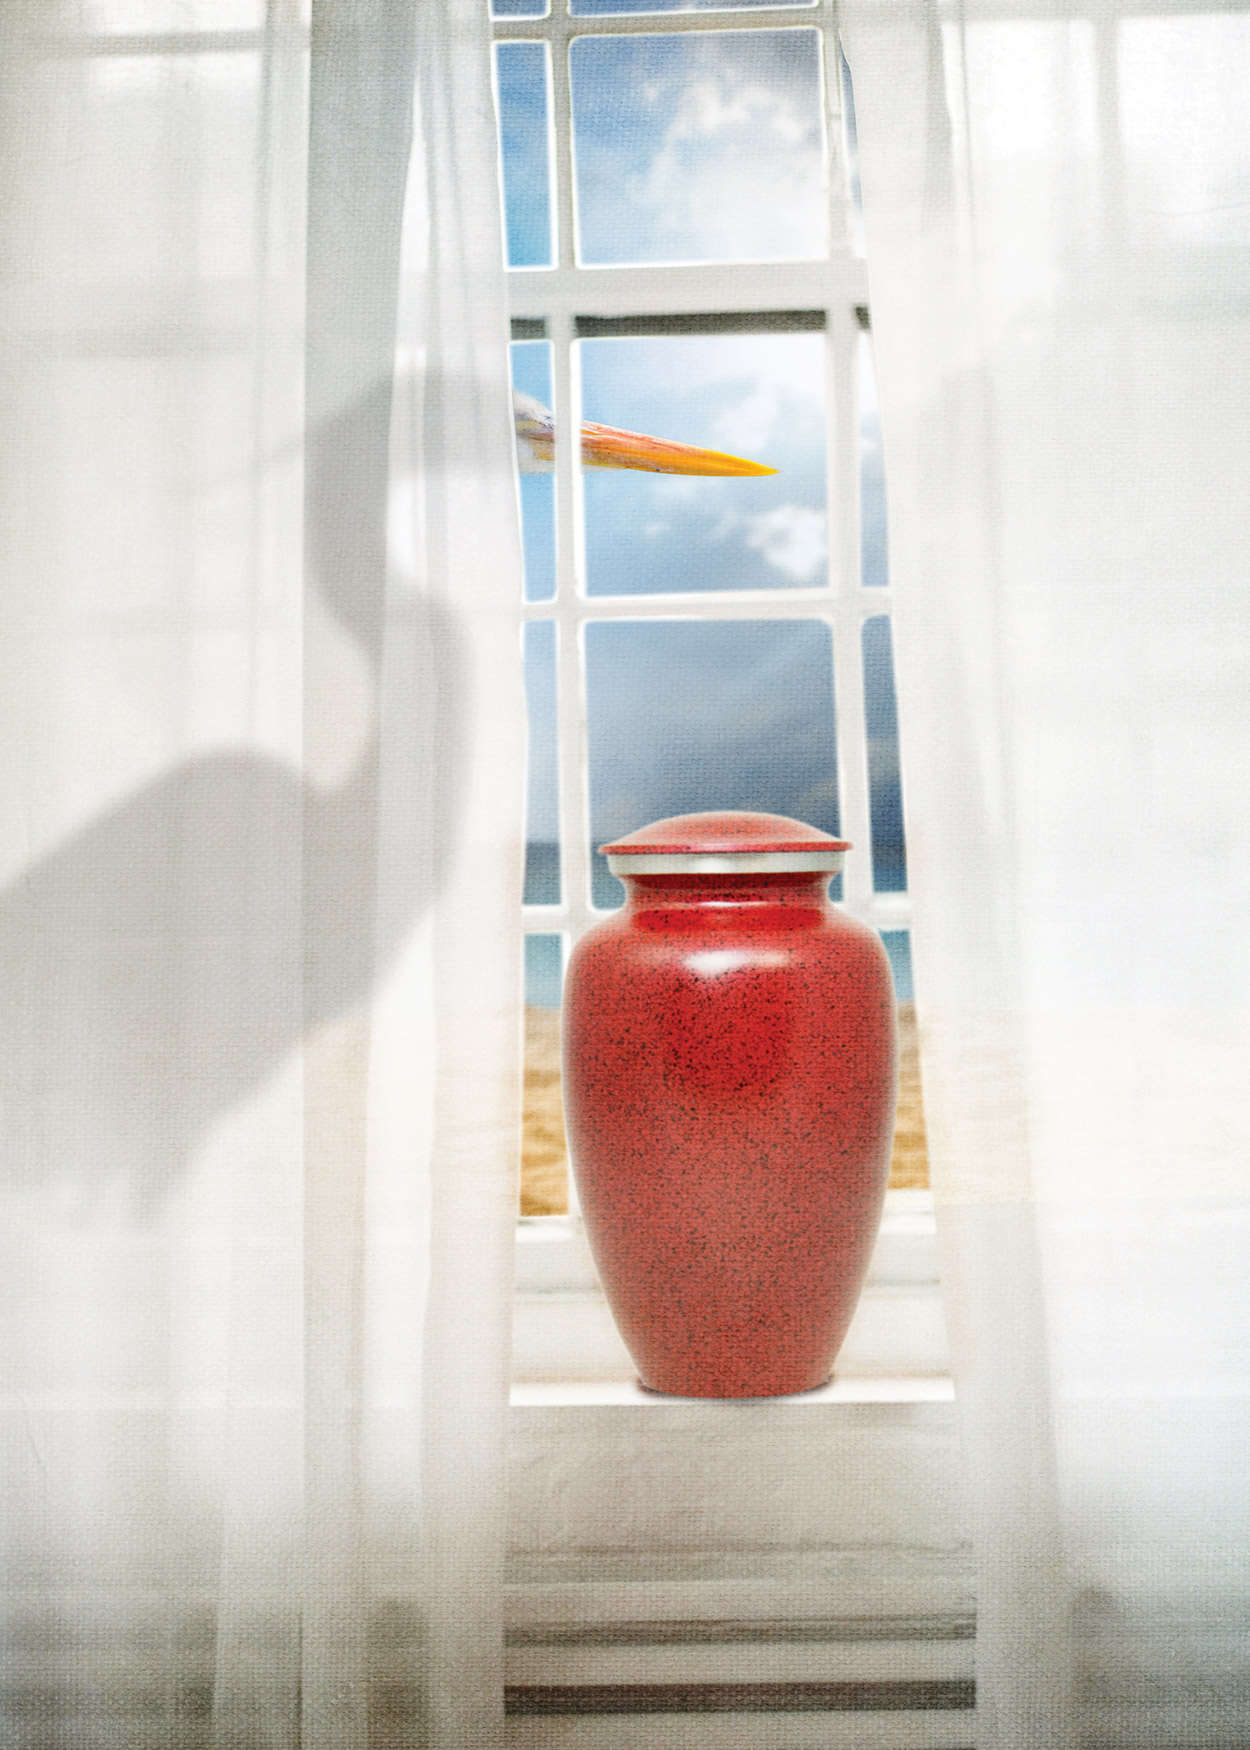 Key Art from The Wake (2019). An image of a large picture window with white sheer curtains. On the window sill is a red urn. Standing behind the curtain is a crane.